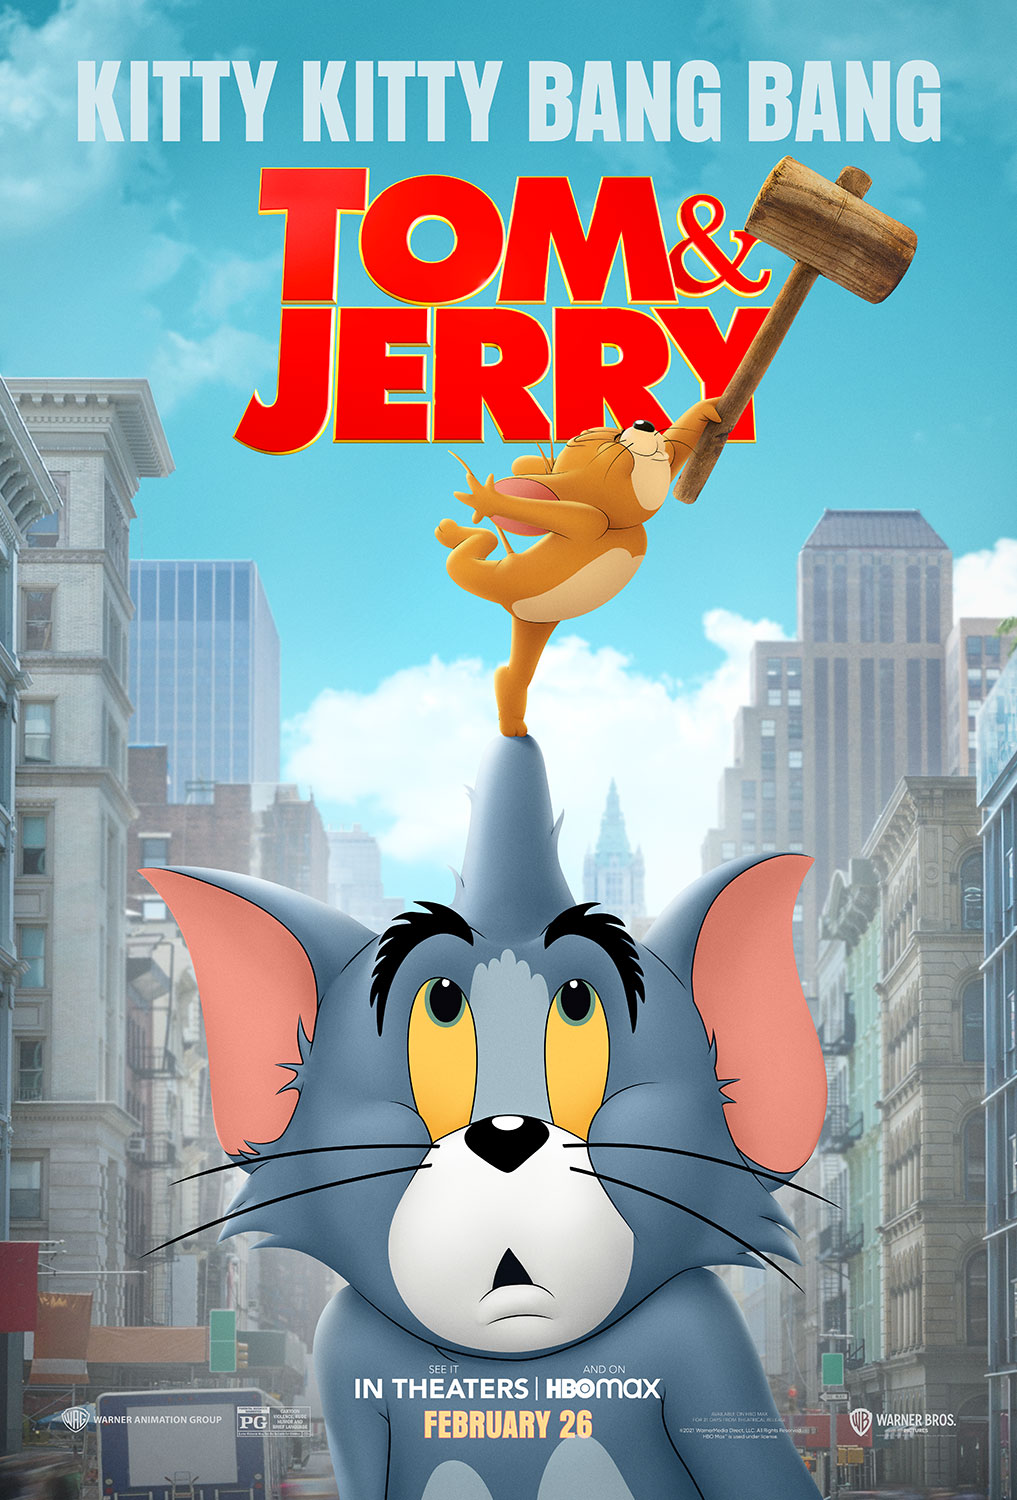 Tom & Jerry | Poster Finishing & Illustration